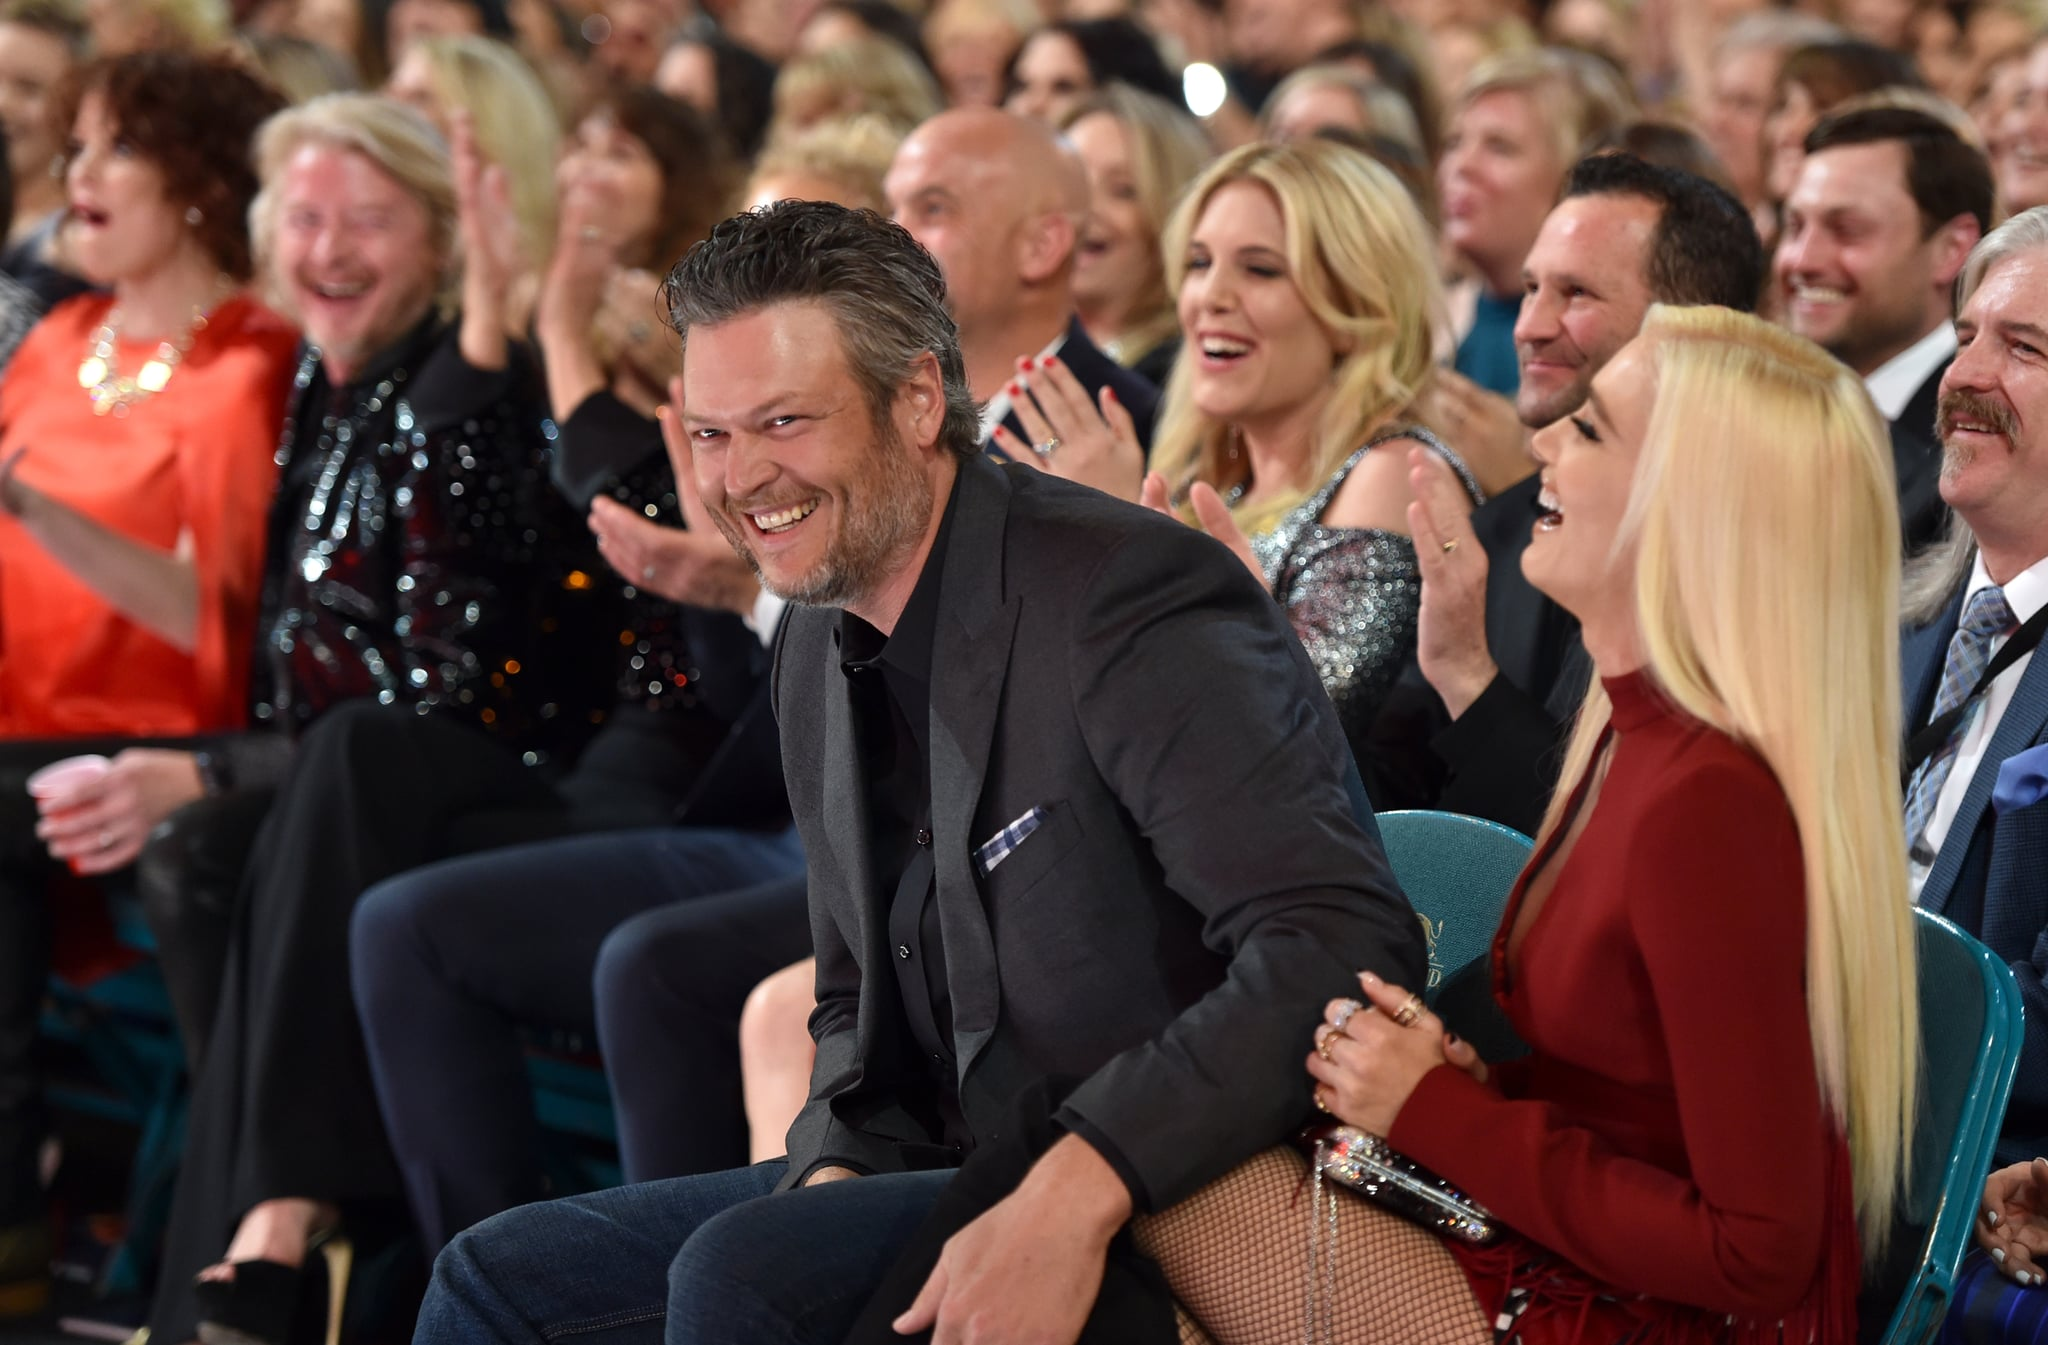 LAS VEGAS, NV - APRIL 15:  Blake Shelton and Gwen Stefani attend the 53rd Academy of Country Music Awards at MGM Grand Garden Arena on April 15, 2018 in Las Vegas, Nevada.  (Photo by John Shearer/ACMA2018/Getty Images for ACM)